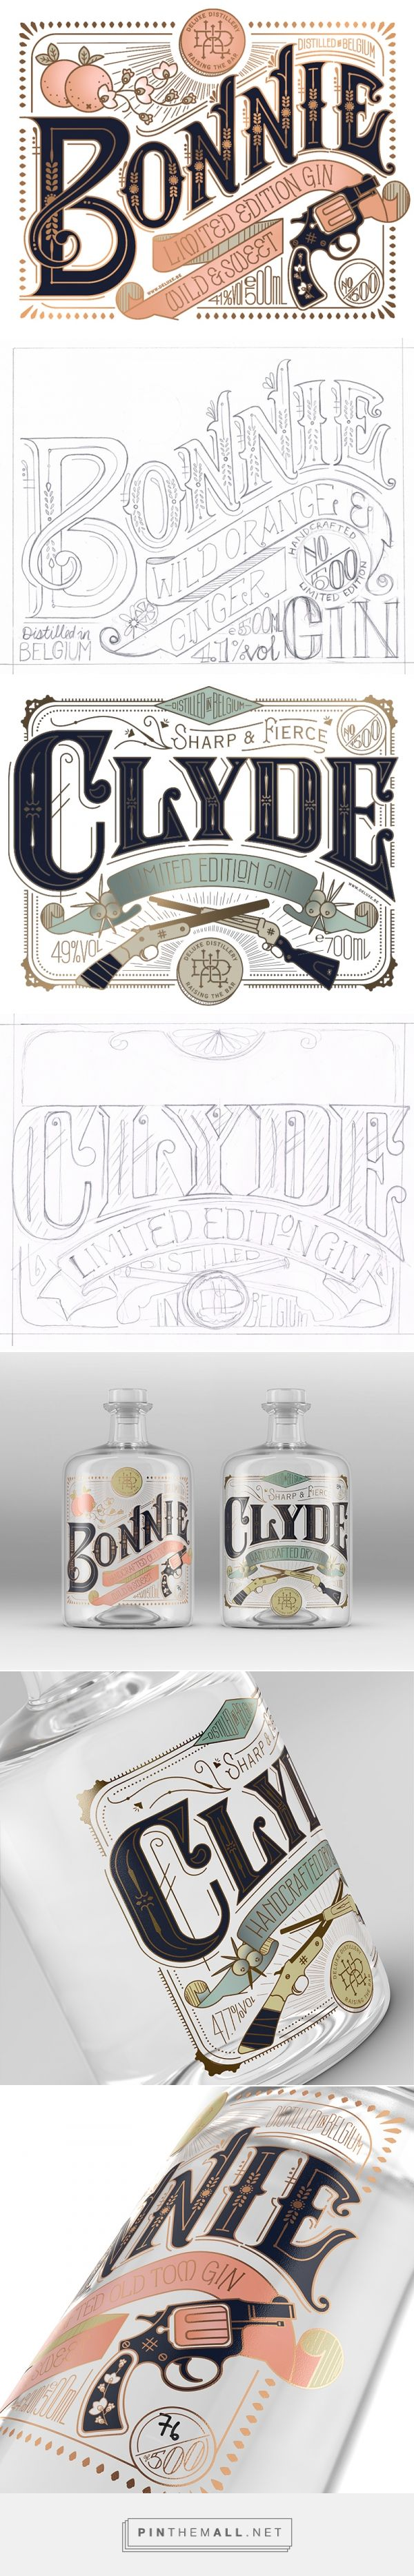 """Bonnie & Clyde"" ‪Gin‬ ‎packaging‬ ‎‬ by Pearly Yon (‪South Africa‬)"